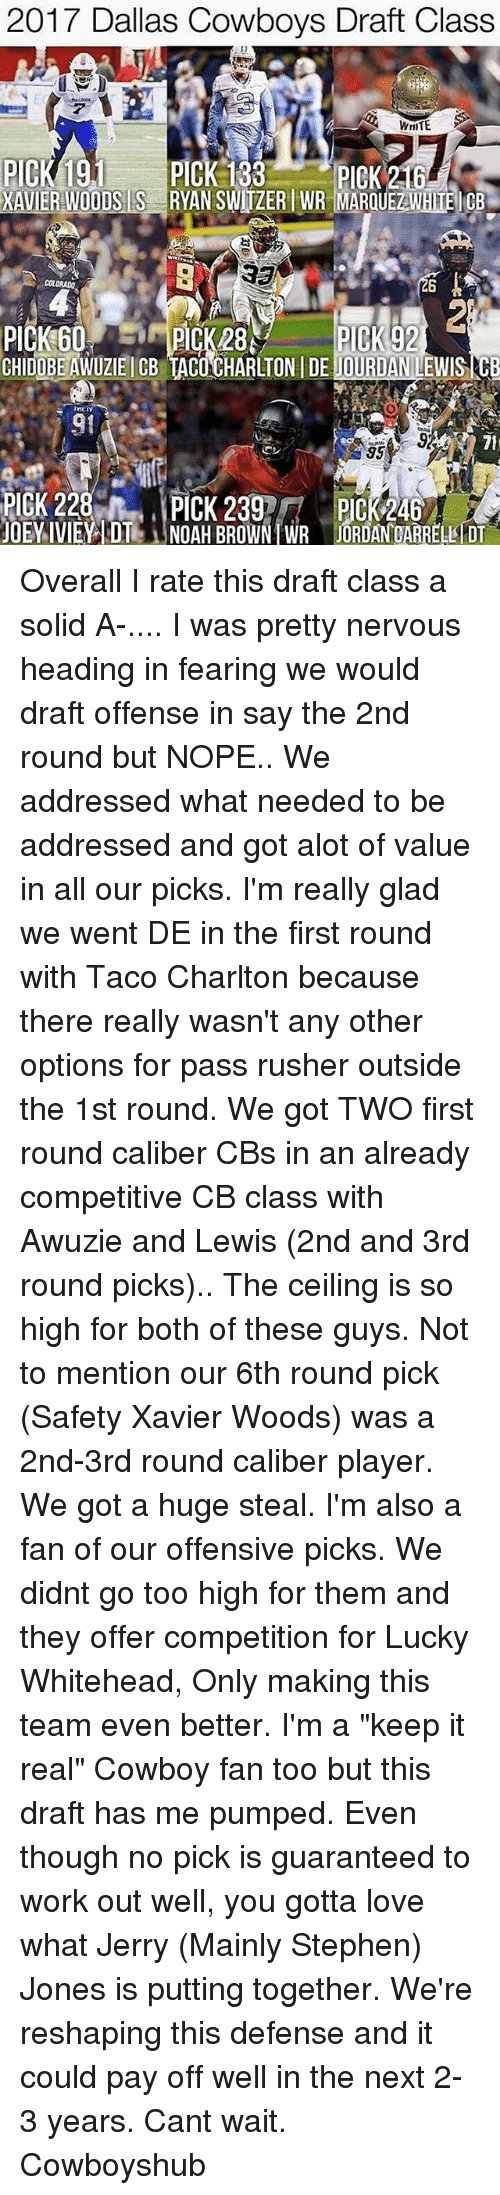 """Real Cowboy: 2017 Dallas Cowboys Draft Class  PICK 191  XAVIER WODIS IS RYAN SWITZER WR MARQUEZIEI CB  COLORA  PICK 60.  PICK 92  IYILIY  PICK 228  PICK 239  PICK 246  JOEY IVIEY DT1S NOAH BROWN WR JORDAN OARRELI DT Overall I rate this draft class a solid A-.... I was pretty nervous heading in fearing we would draft offense in say the 2nd round but NOPE.. We addressed what needed to be addressed and got alot of value in all our picks. I'm really glad we went DE in the first round with Taco Charlton because there really wasn't any other options for pass rusher outside the 1st round. We got TWO first round caliber CBs in an already competitive CB class with Awuzie and Lewis (2nd and 3rd round picks).. The ceiling is so high for both of these guys. Not to mention our 6th round pick (Safety Xavier Woods) was a 2nd-3rd round caliber player. We got a huge steal. I'm also a fan of our offensive picks. We didnt go too high for them and they offer competition for Lucky Whitehead, Only making this team even better. I'm a """"keep it real"""" Cowboy fan too but this draft has me pumped. Even though no pick is guaranteed to work out well, you gotta love what Jerry (Mainly Stephen) Jones is putting together. We're reshaping this defense and it could pay off well in the next 2-3 years. Cant wait. Cowboyshub"""